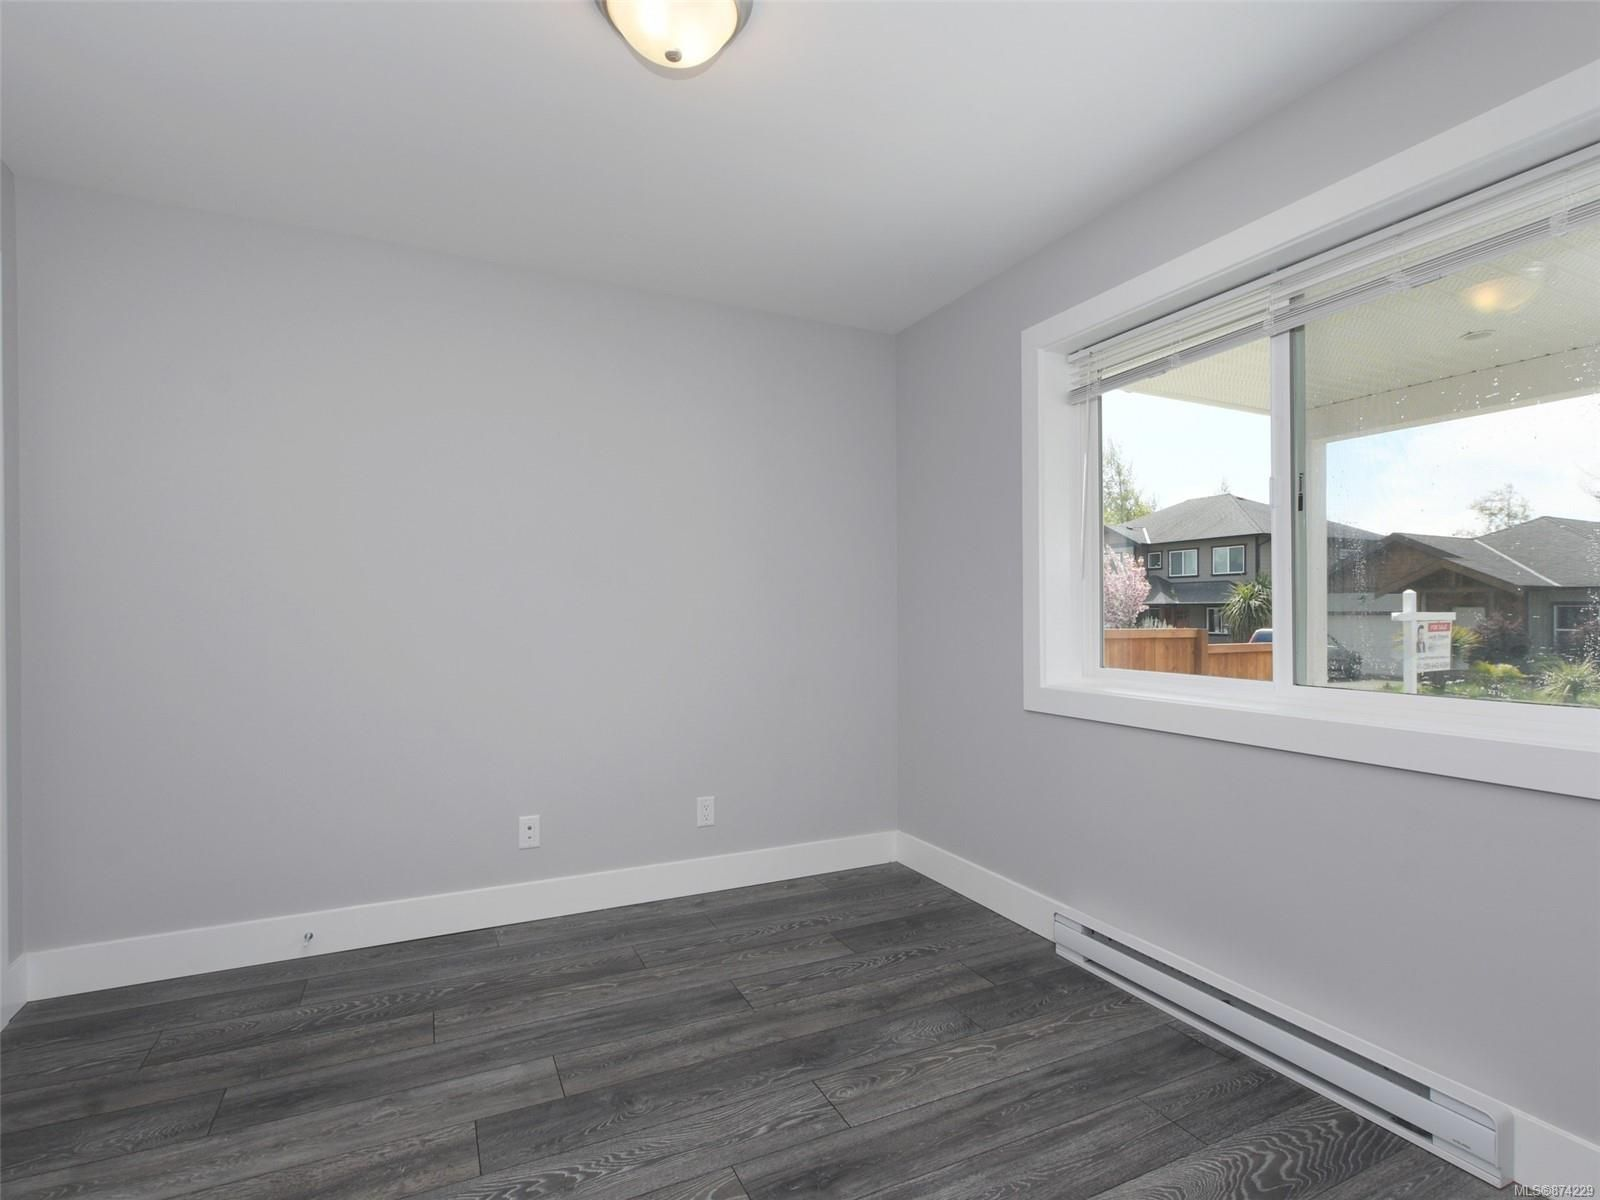 Photo 14: Photos: 1921 Tominny Rd in : Sk Sooke Vill Core House for sale (Sooke)  : MLS®# 874229